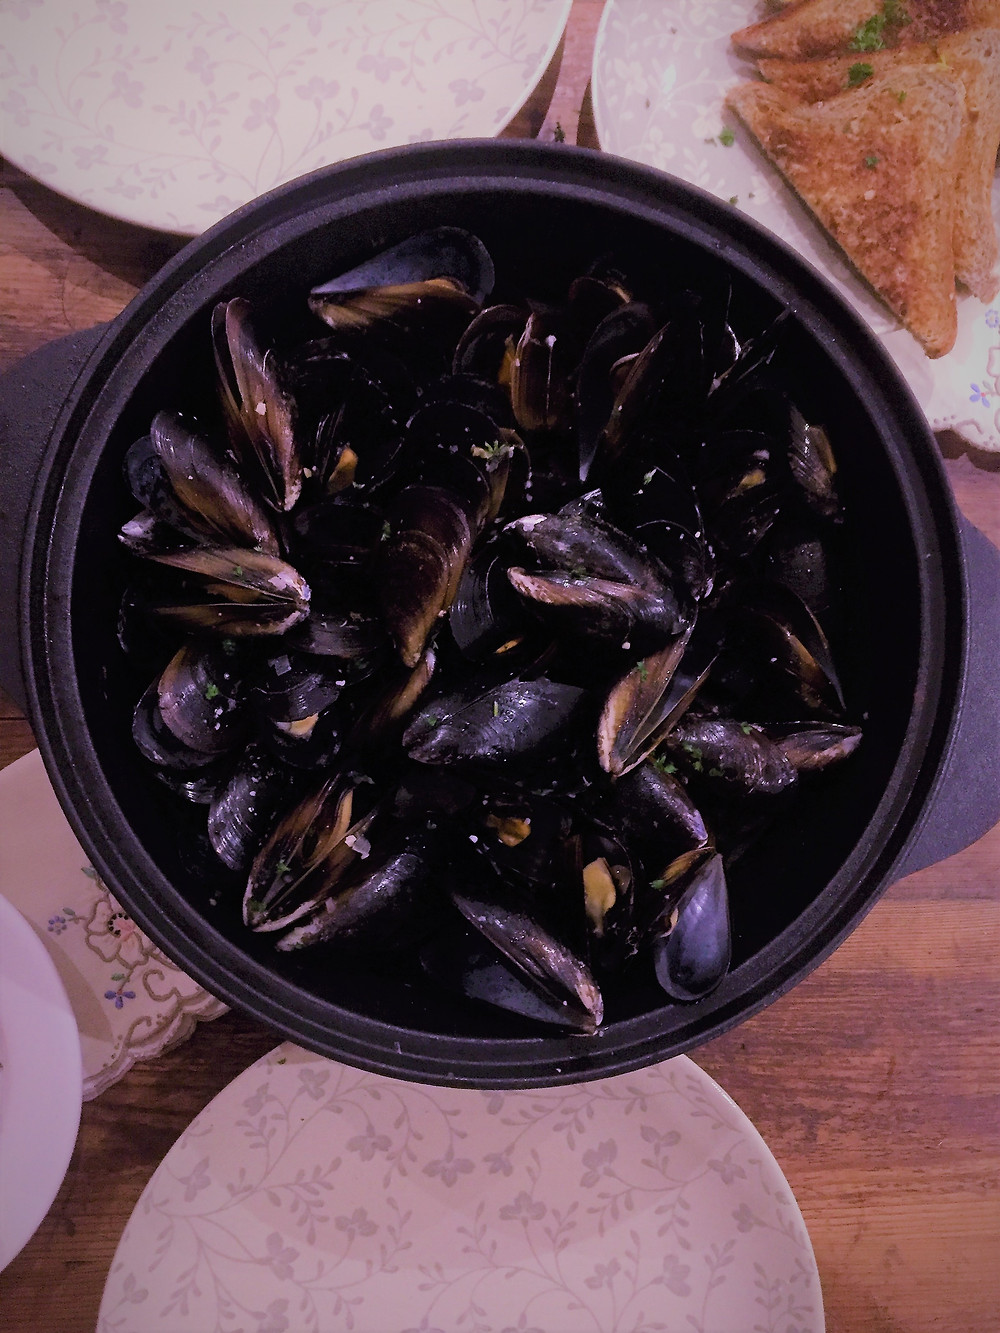 Mussel pot ready to be eaten. Mussels open and ready to eat